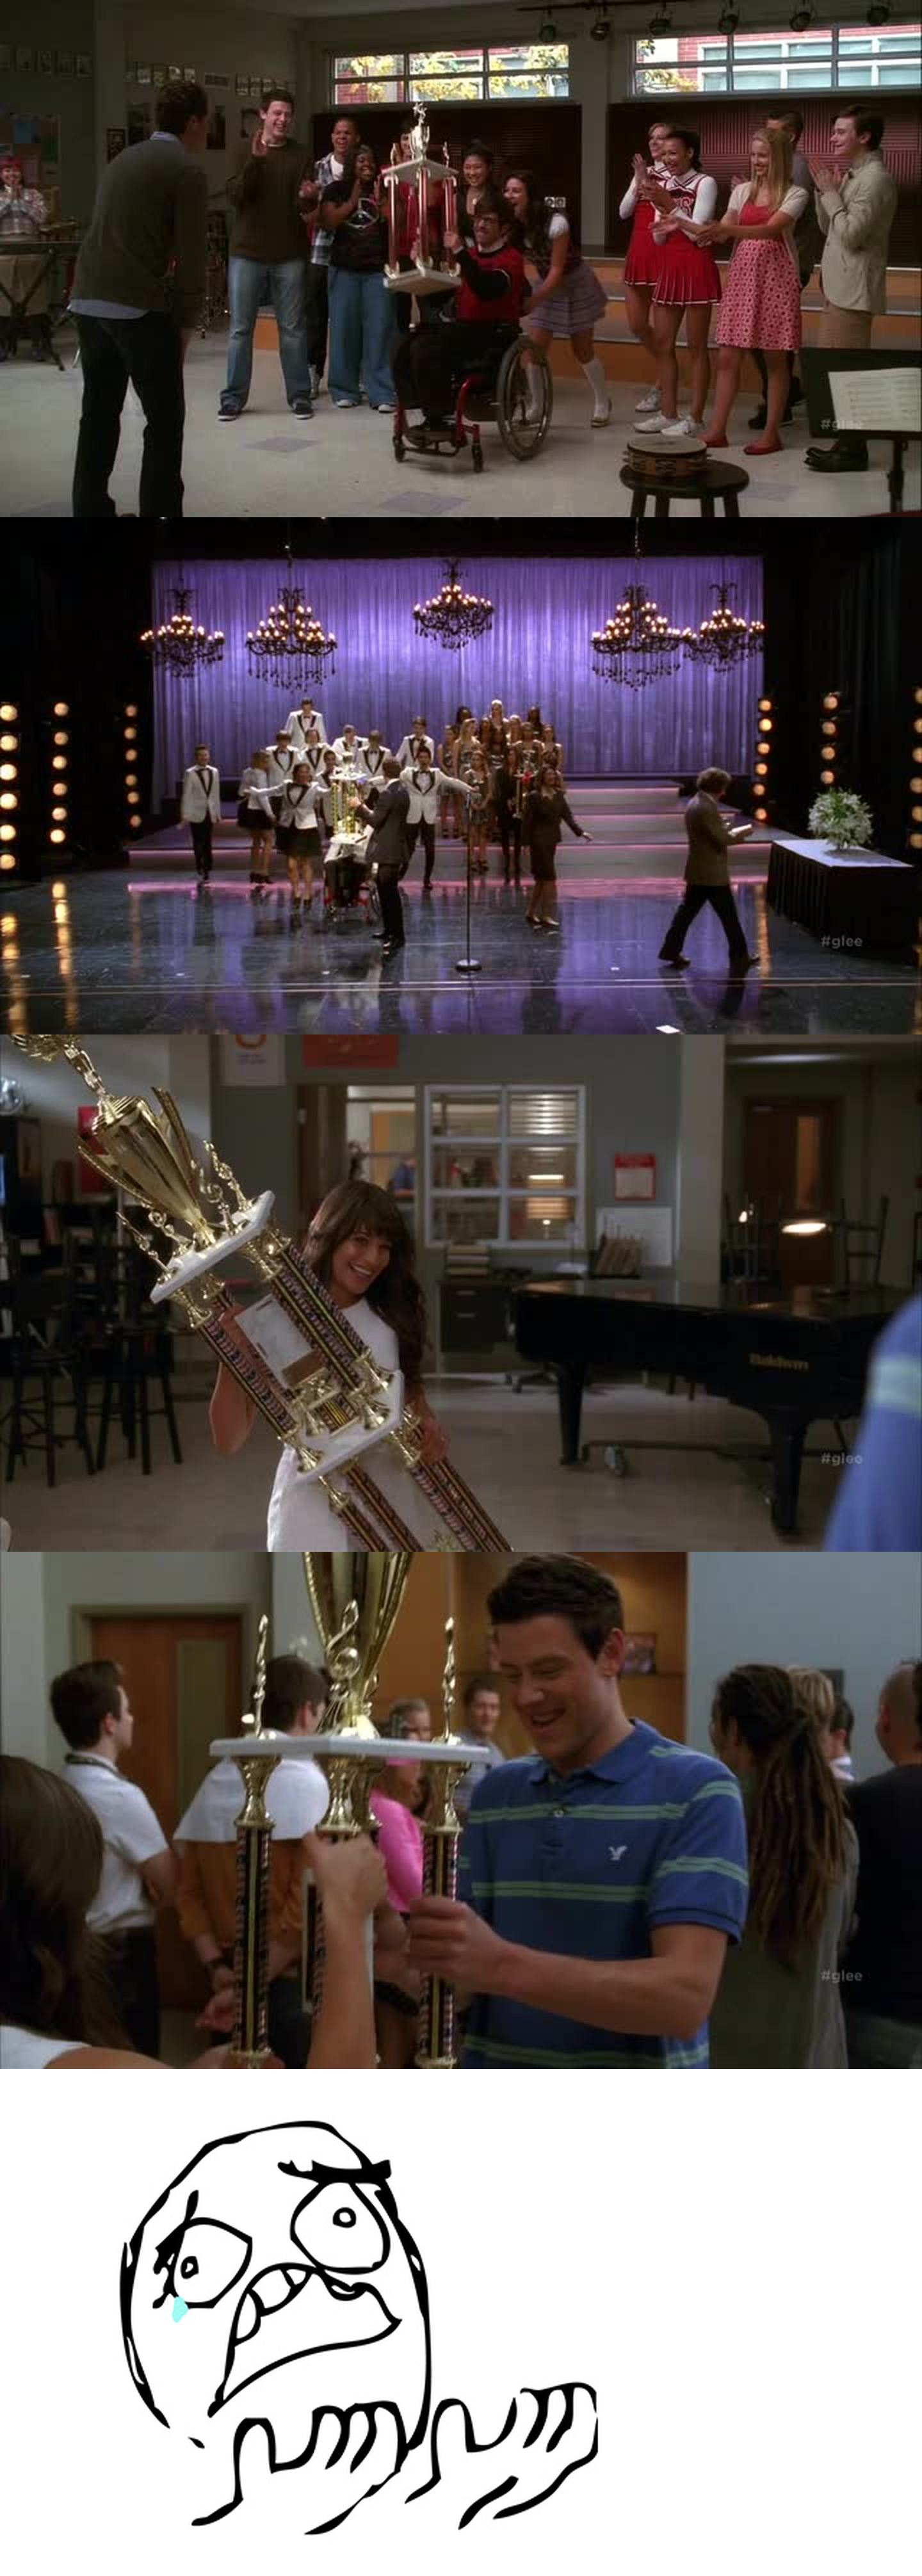 I don't want Glee to be over. I couldn't handle the flashbacks.